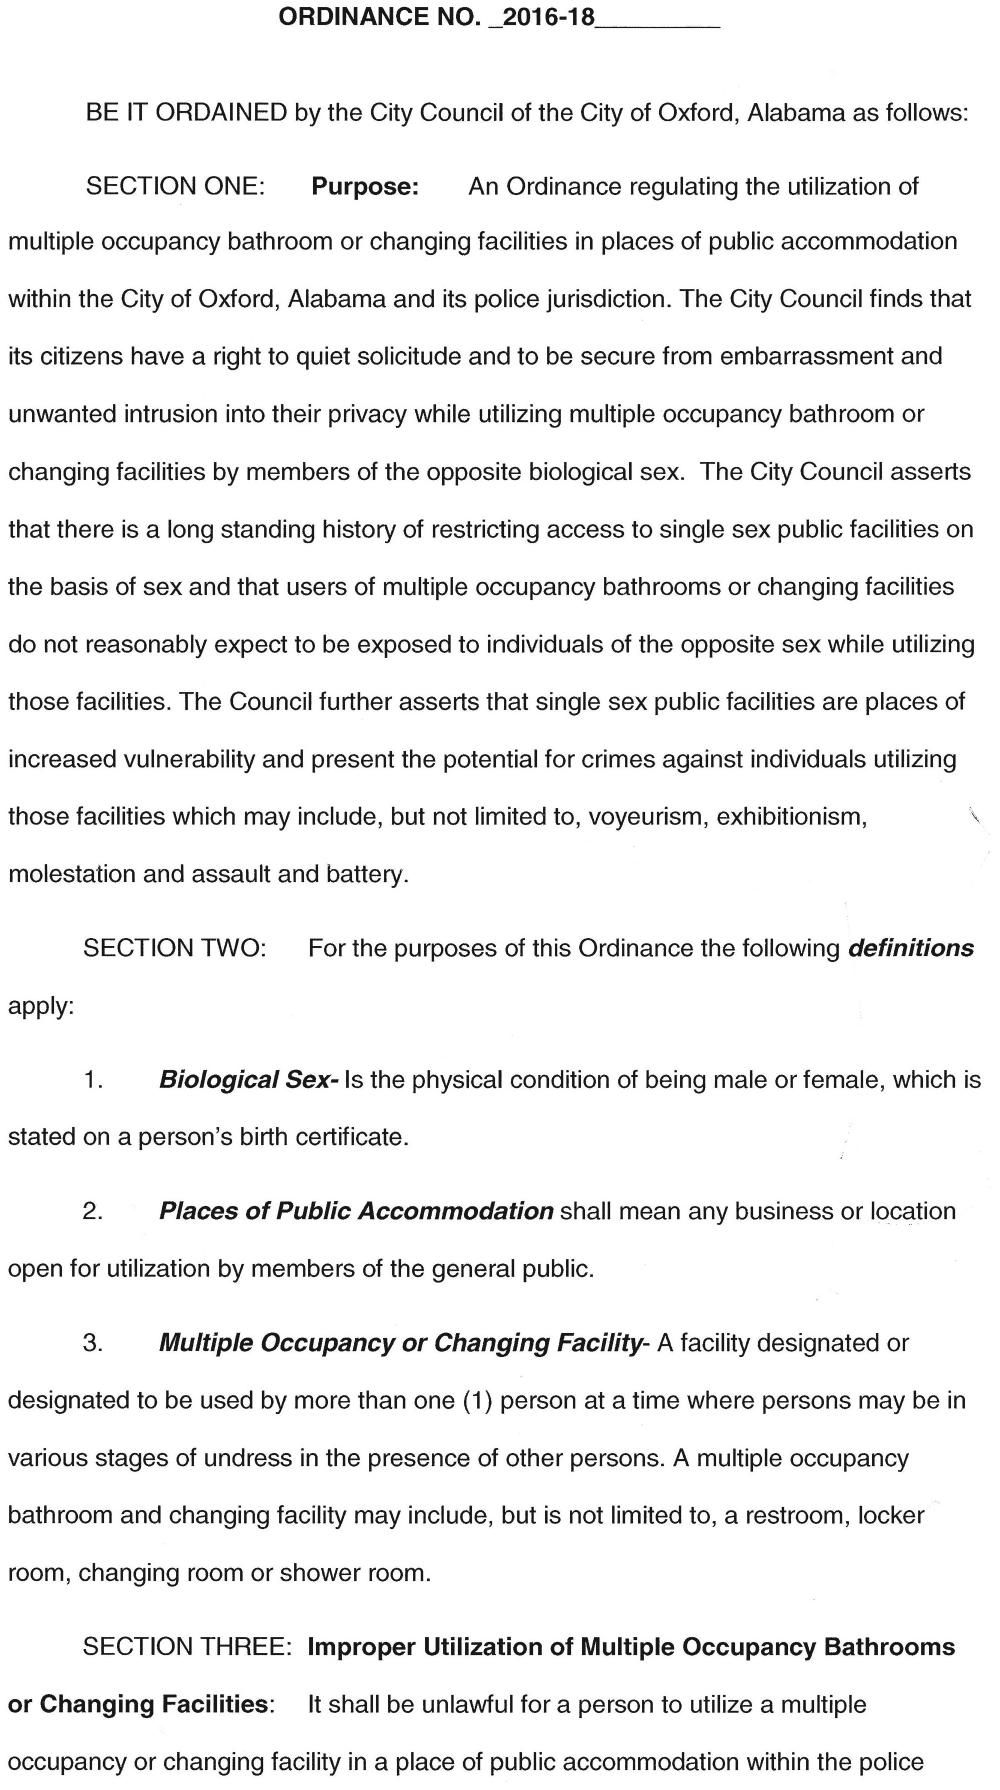 Oxford's new bathroom/changing facility ordinance